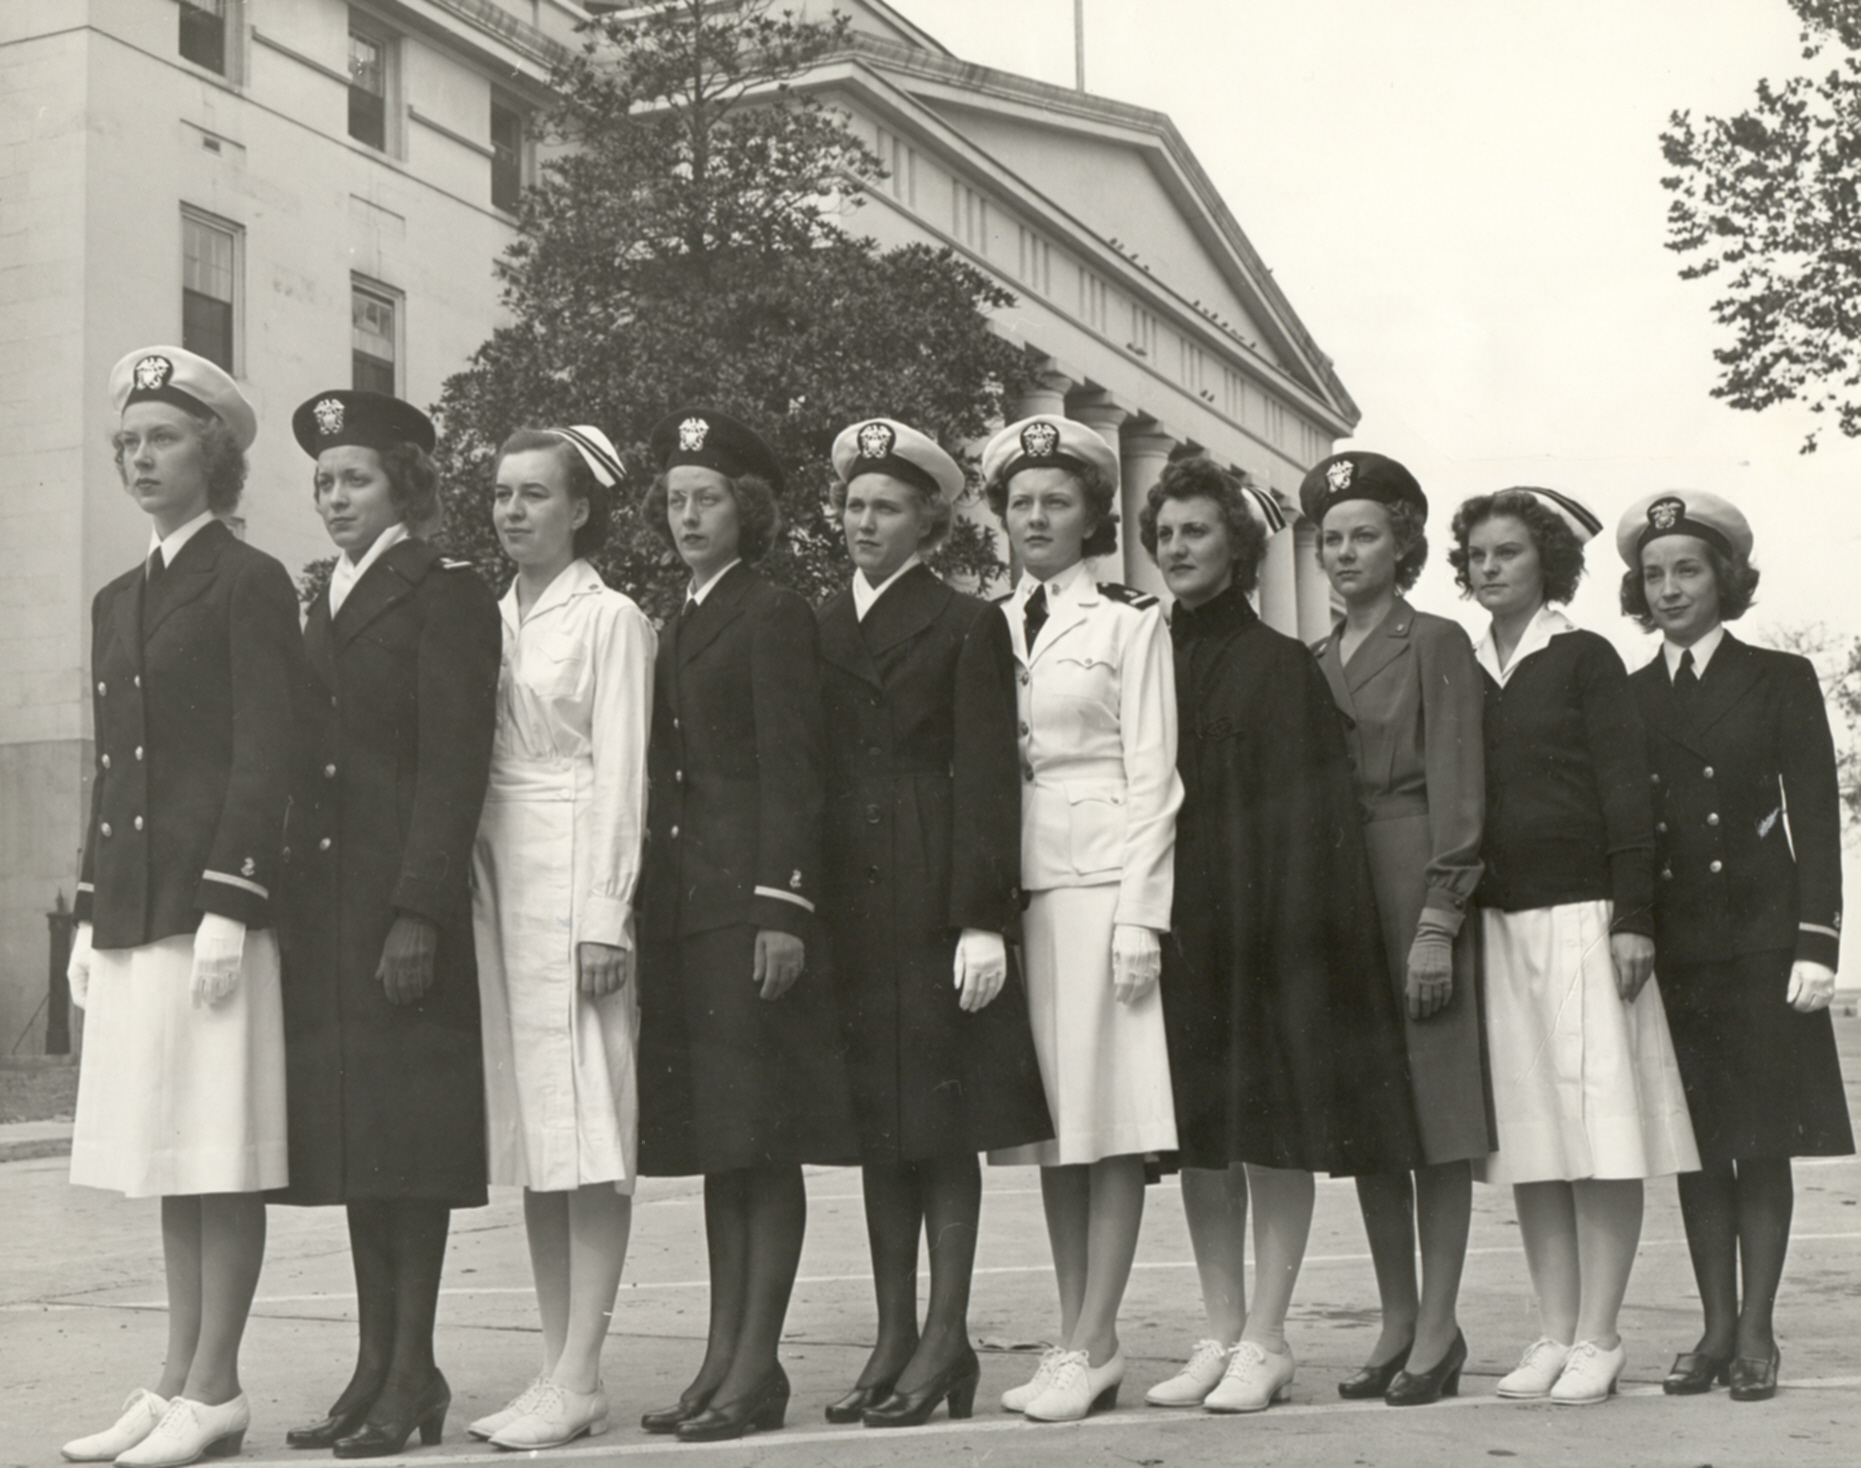 Http Commons Wikimedia Org Wiki File Nurses In The 1940s Jpg